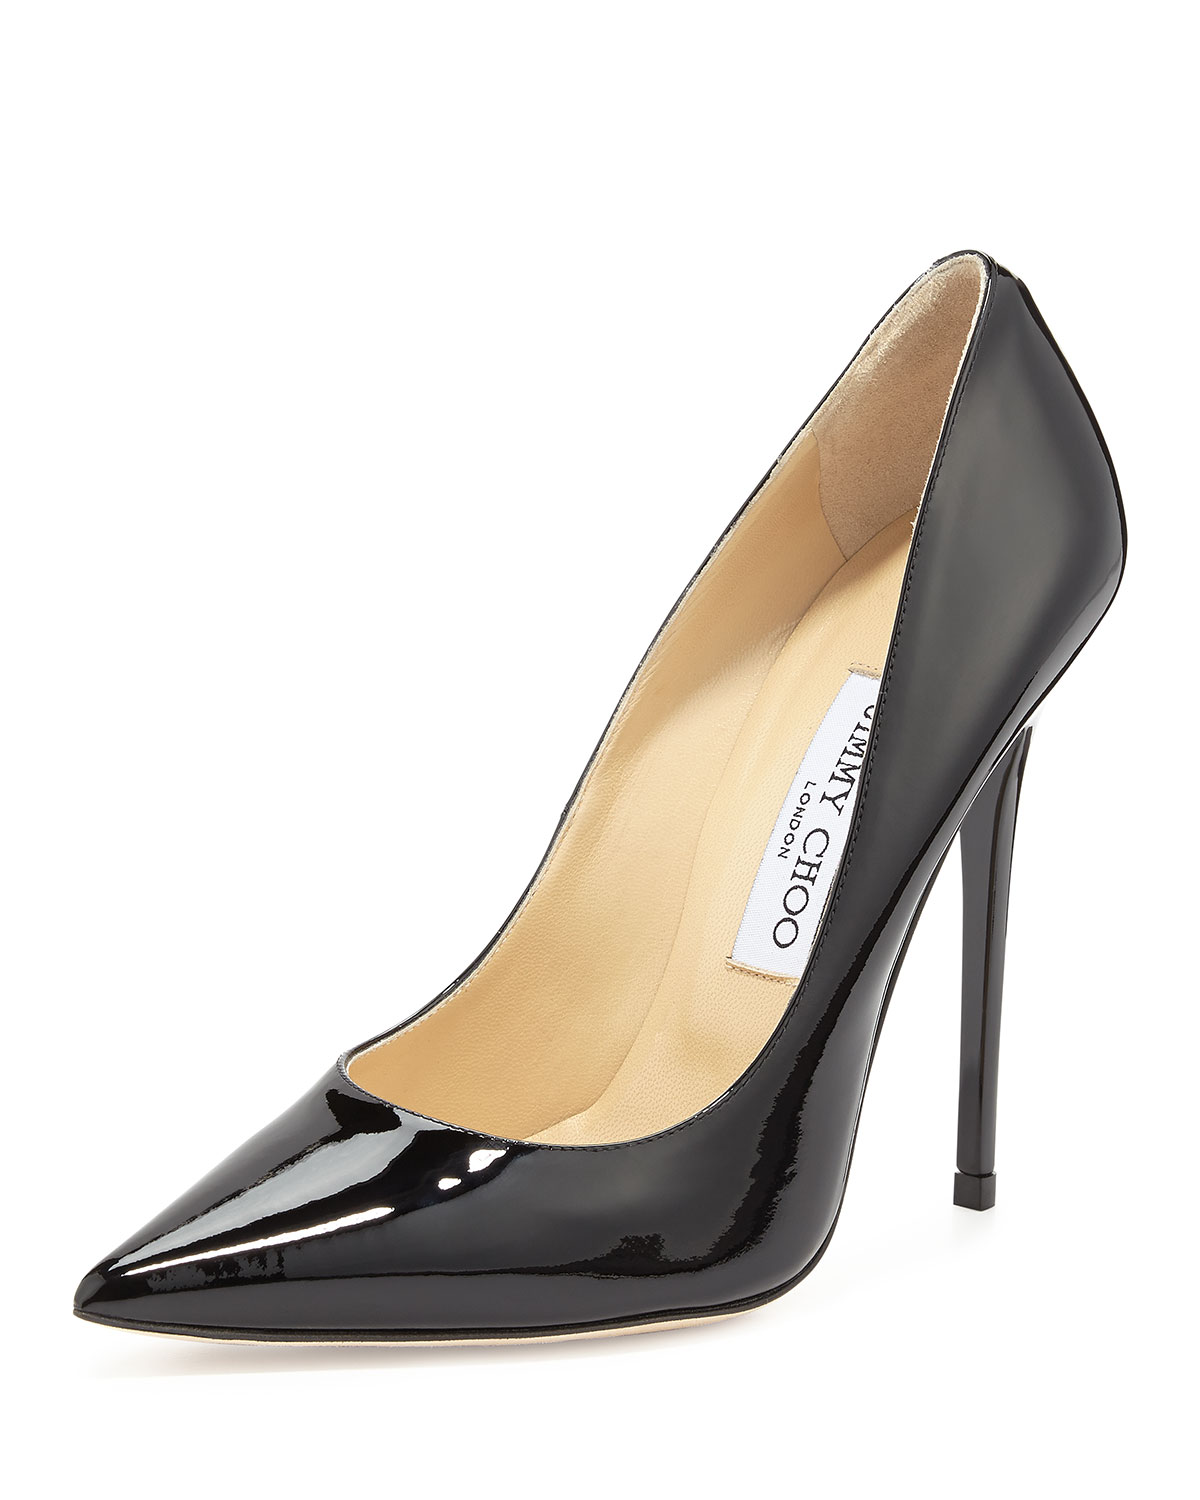 91448d45783 Jimmy Choo Anouk Patent Leather Pump